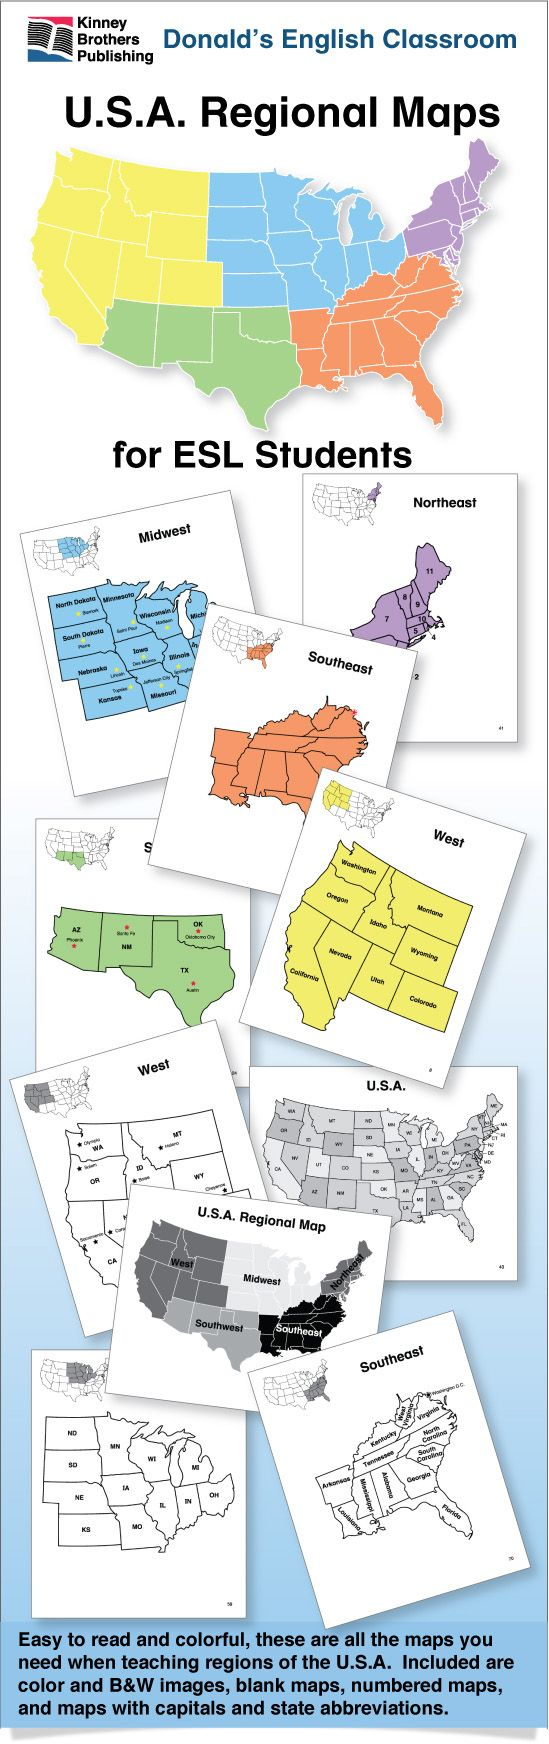 U S A Regional Maps Gives Your Esl Students A Clear Understanding Of U S Regional States Their